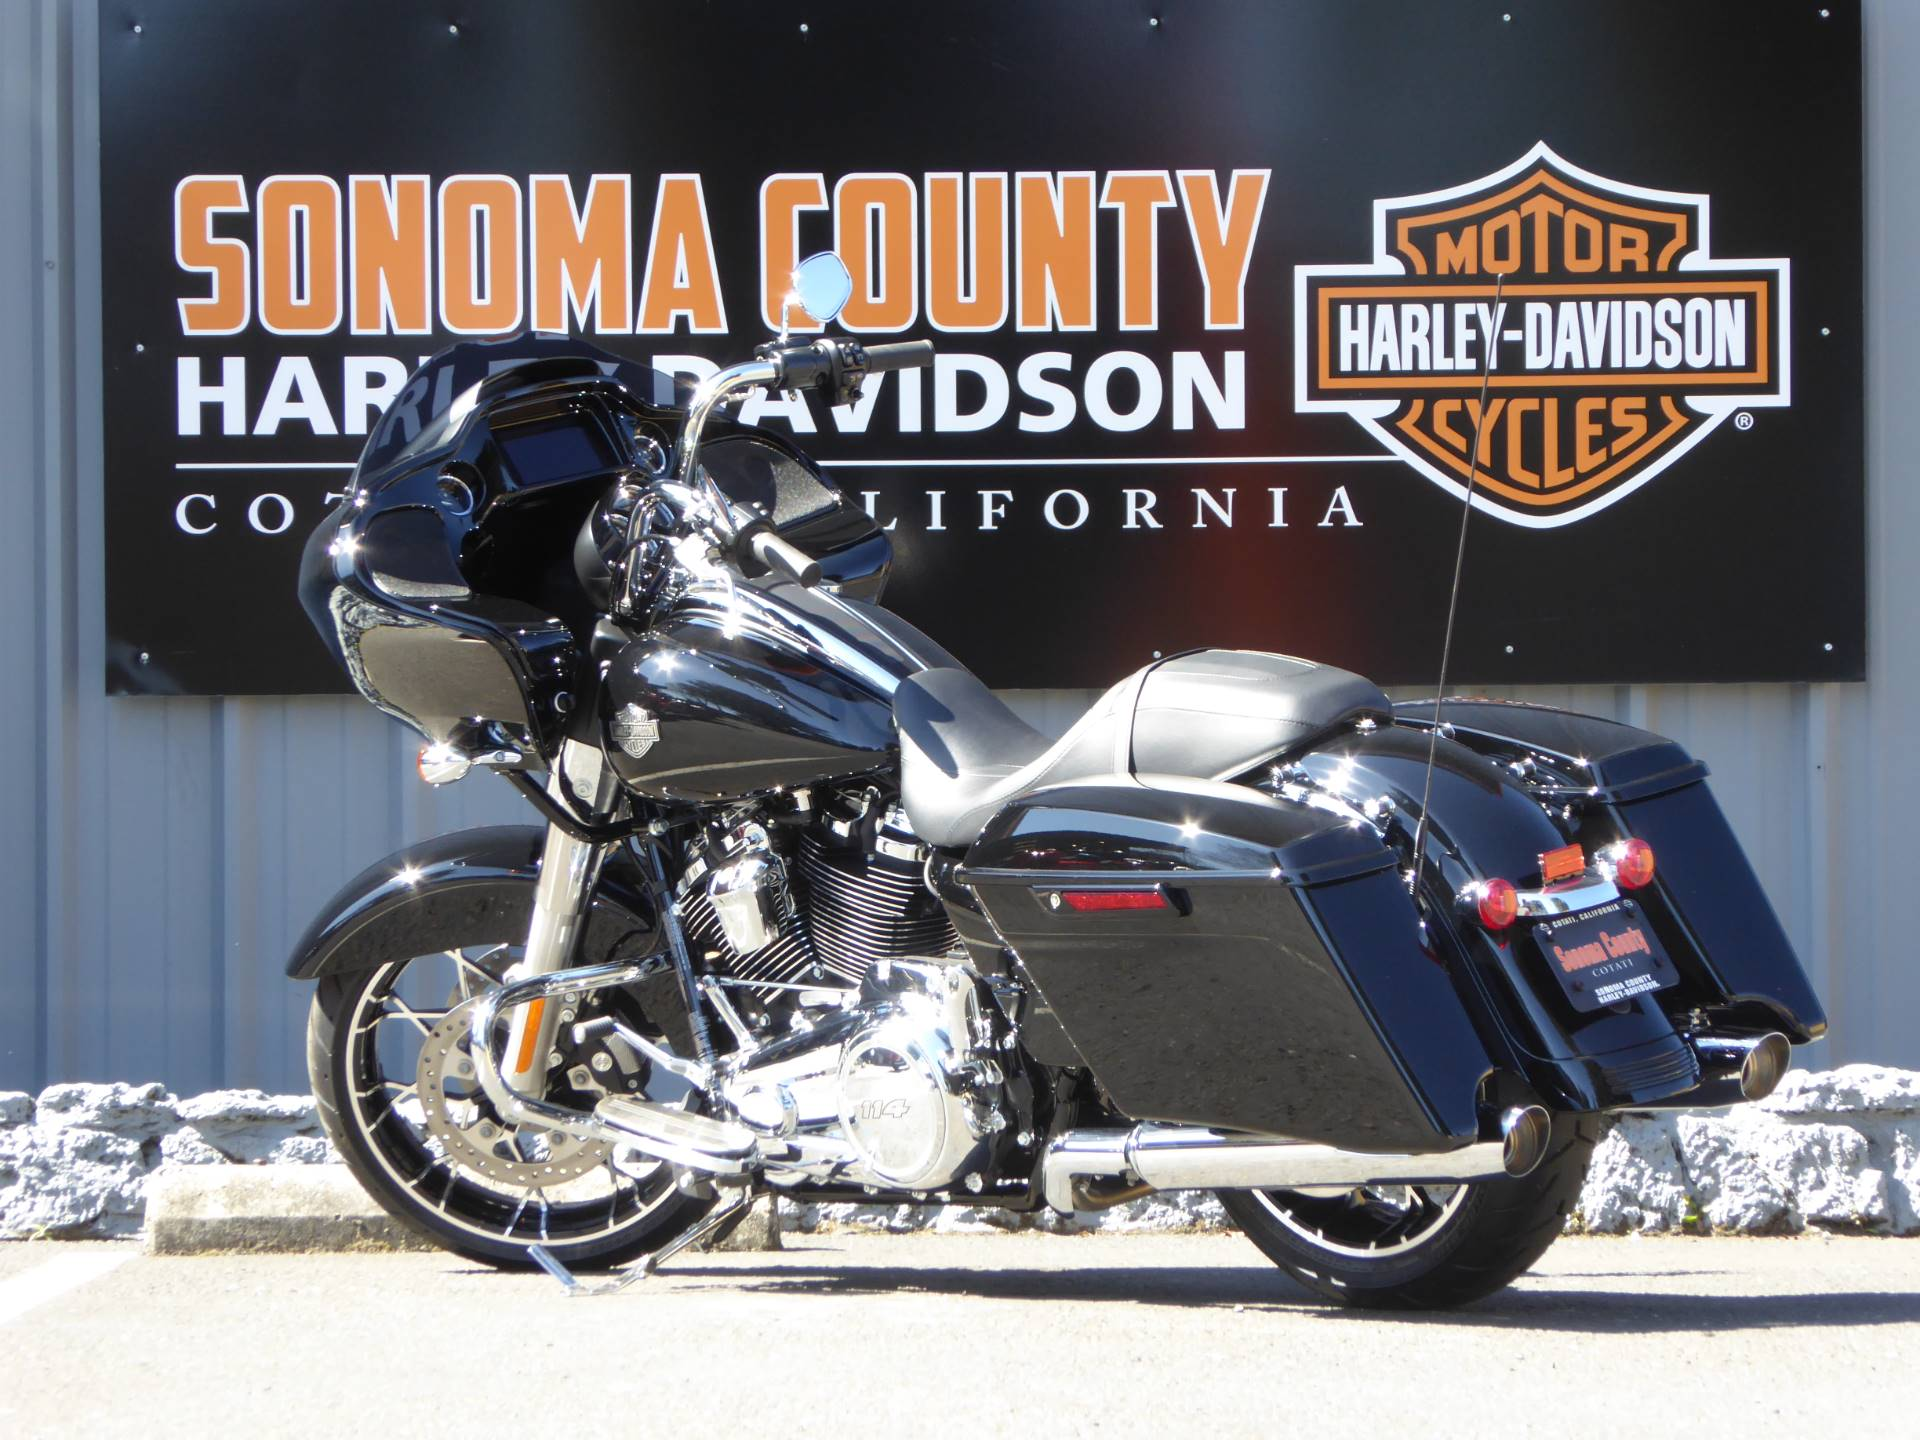 2021 Harley-Davidson FLTRXS ROAD GLIDE SPECIAL in Cotati, California - Photo 4